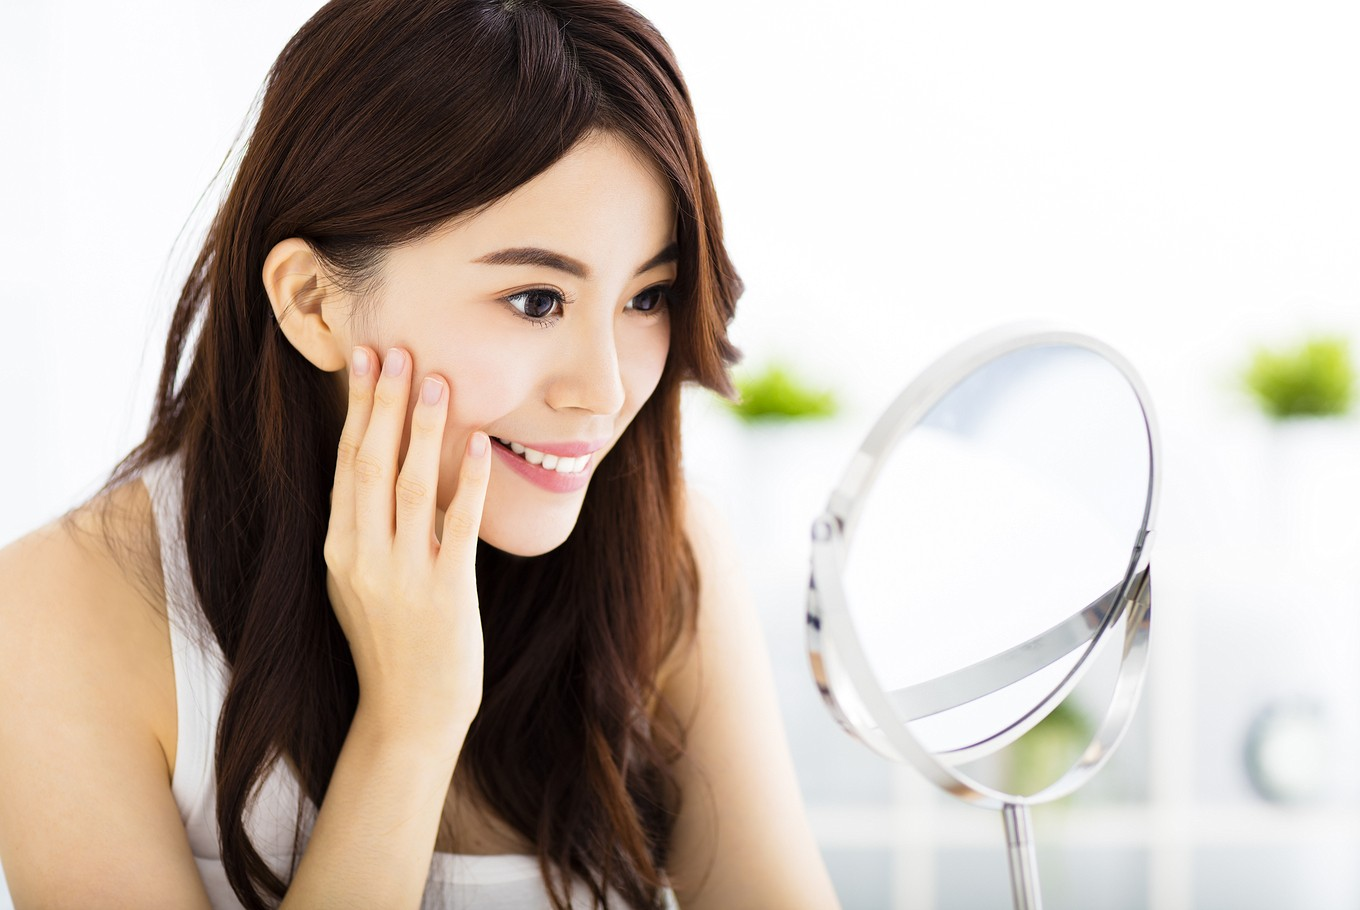 Six facts you should know about Asian skin - Health - The Jakarta Post